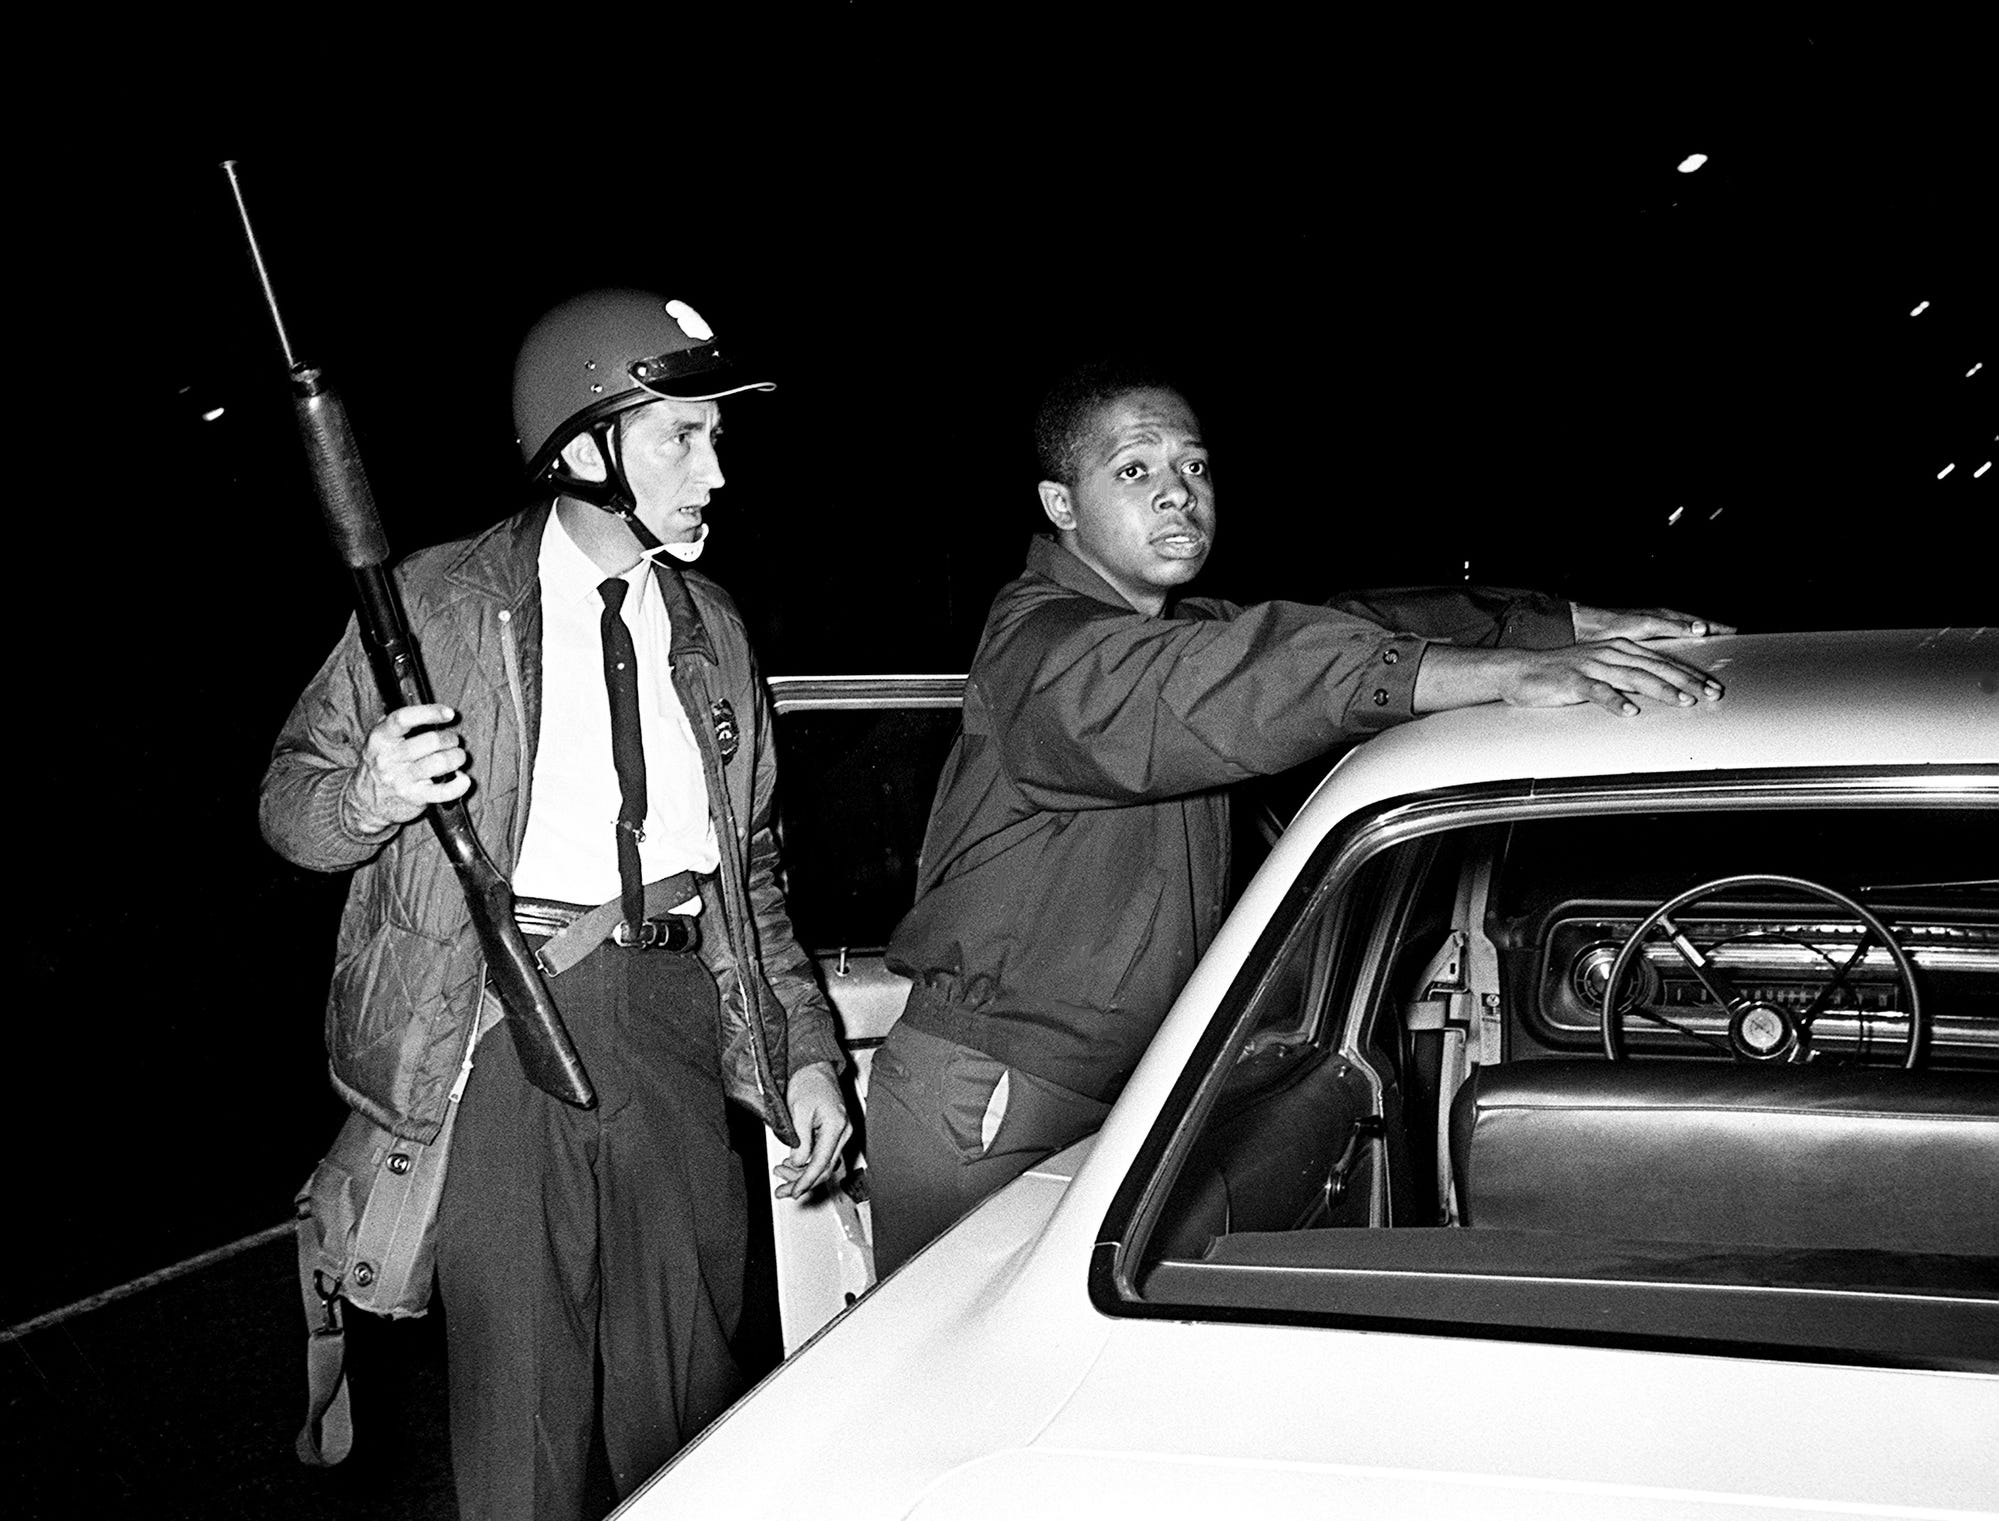 A Metro police officer, left, checks out a suspect near the Tennessee State University campus on Jefferson Street on April 9, 1967. Rock throwing escalated to gunfire as violence erupted, sending mobs and riot police swarming through North Nashville's black community.